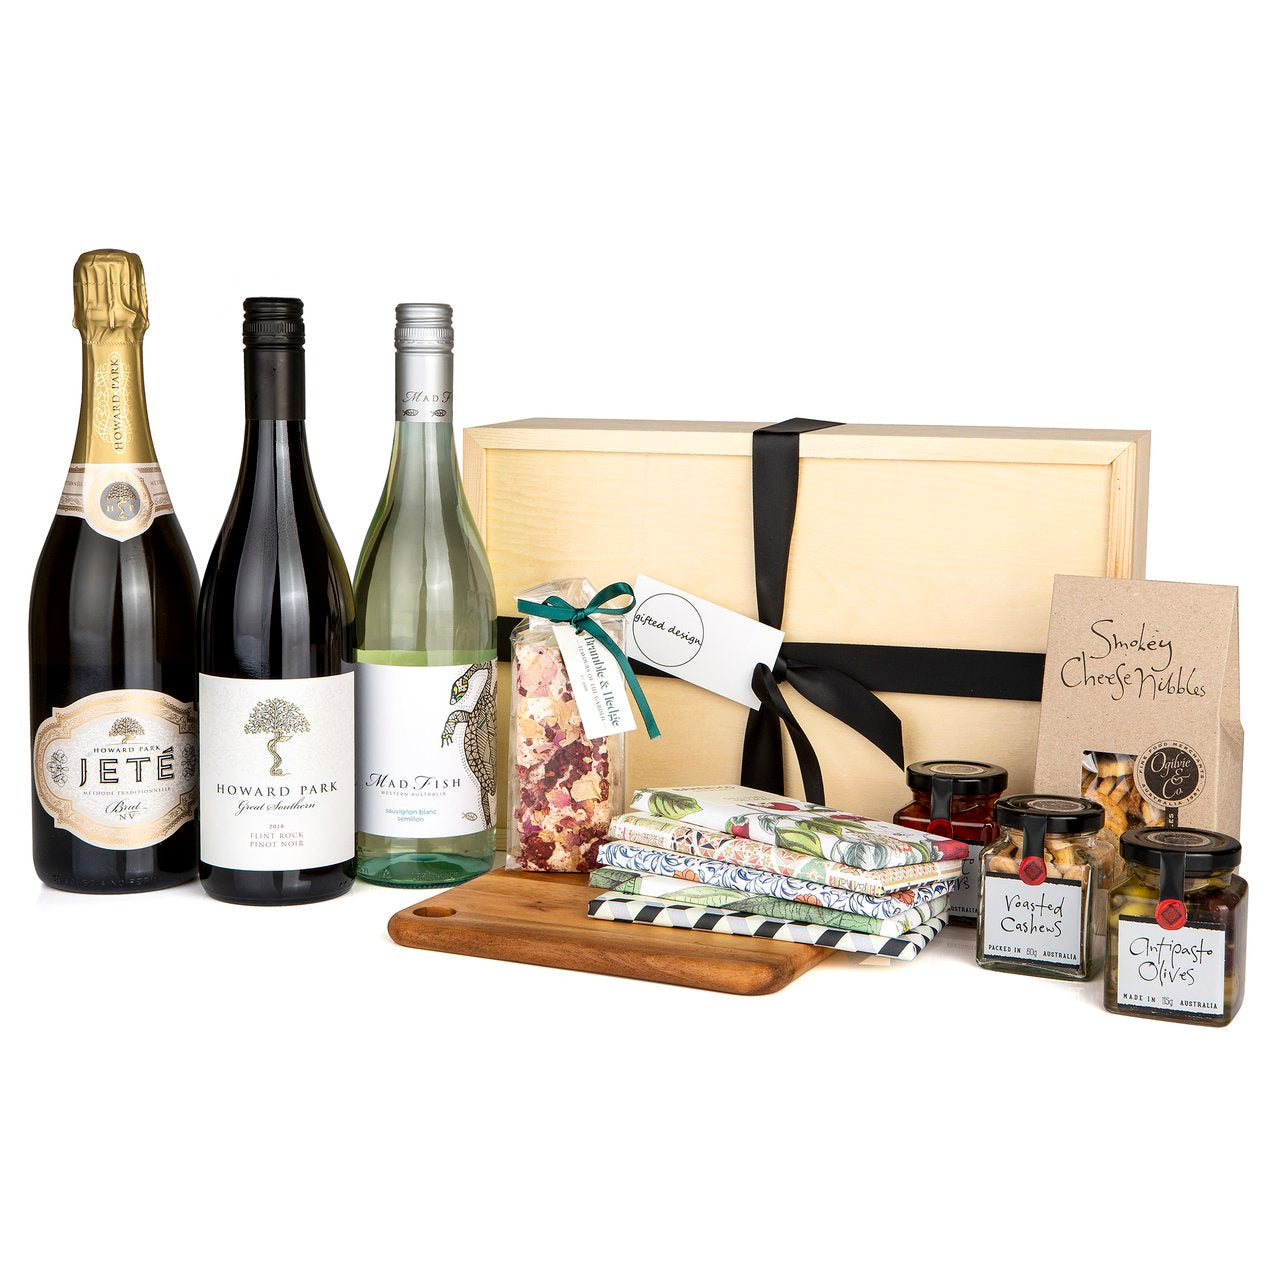 Perth Based Gift Box Company Gifted Design